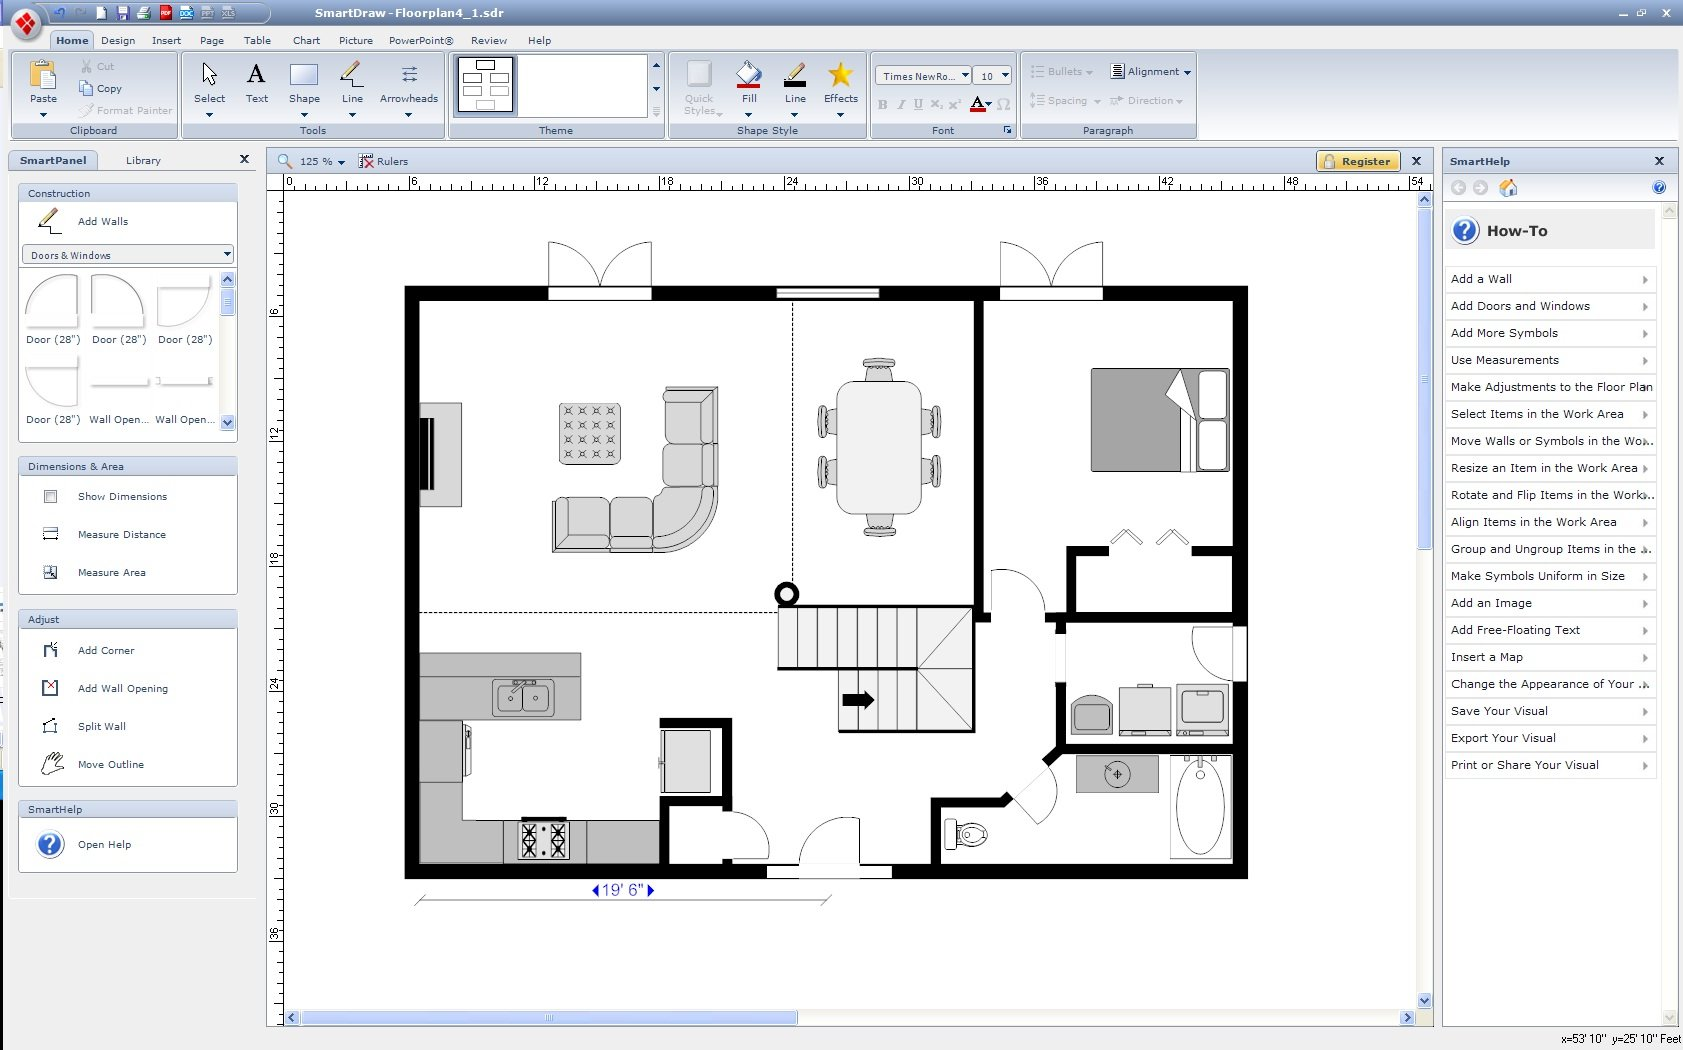 Free Online Garage Design Program: 9 Top Garage Design Software Options (Free And Paid